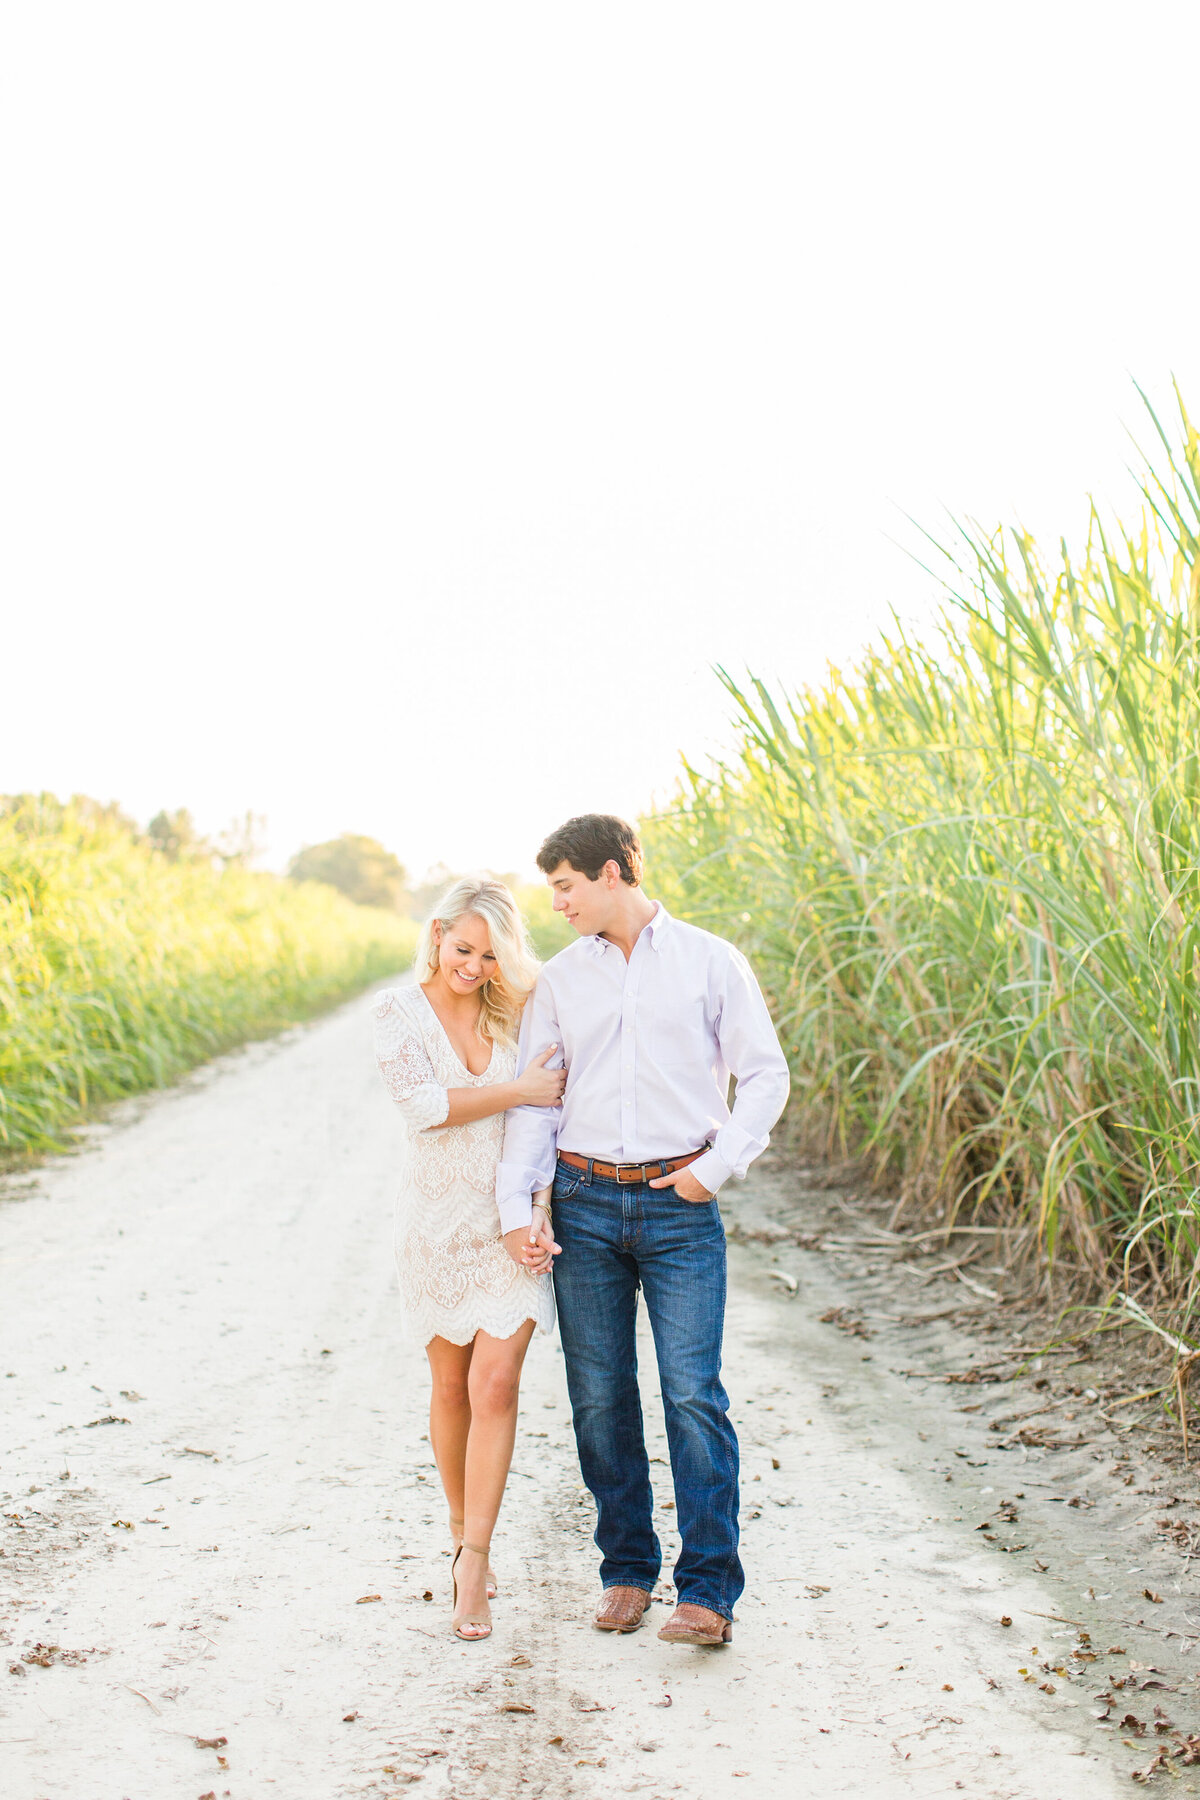 Renee Lorio Photography South Louisiana Wedding Engagement Light Airy Portrait Photographer Photos Southern Clean Colorful18